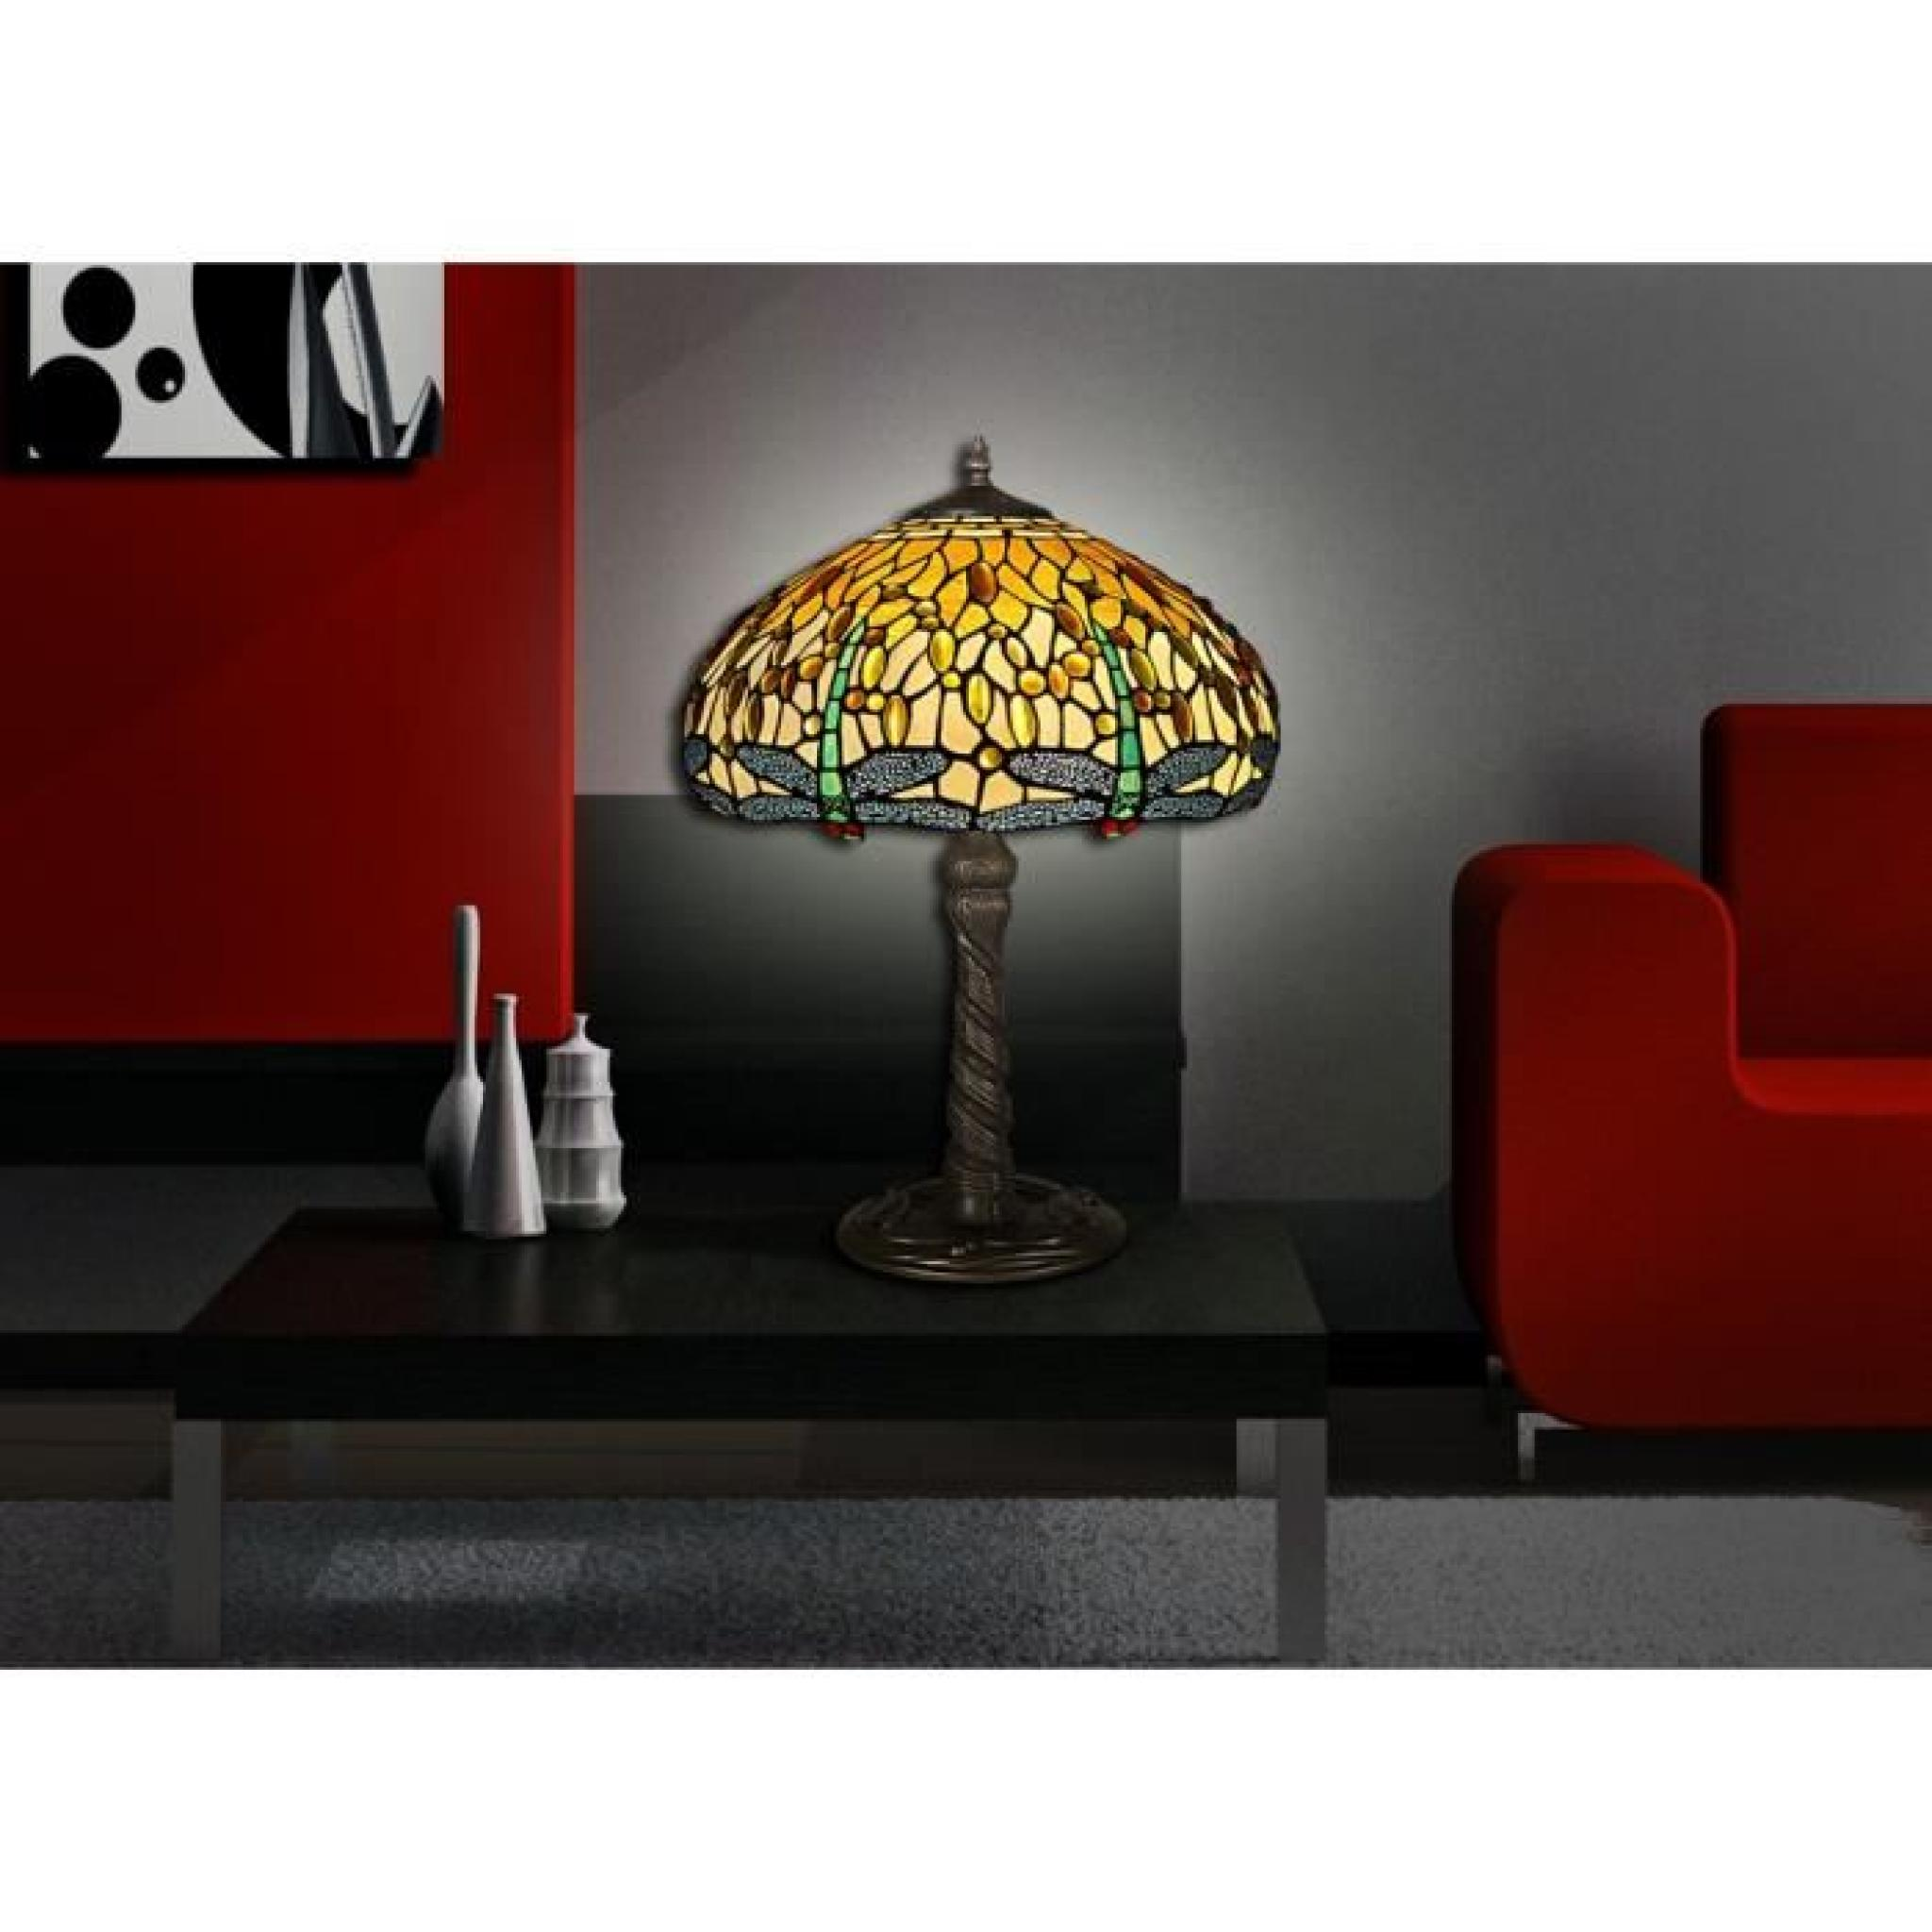 lampe de table libellule style tiffany avec base de m tallique bronz achat vente lampe a. Black Bedroom Furniture Sets. Home Design Ideas